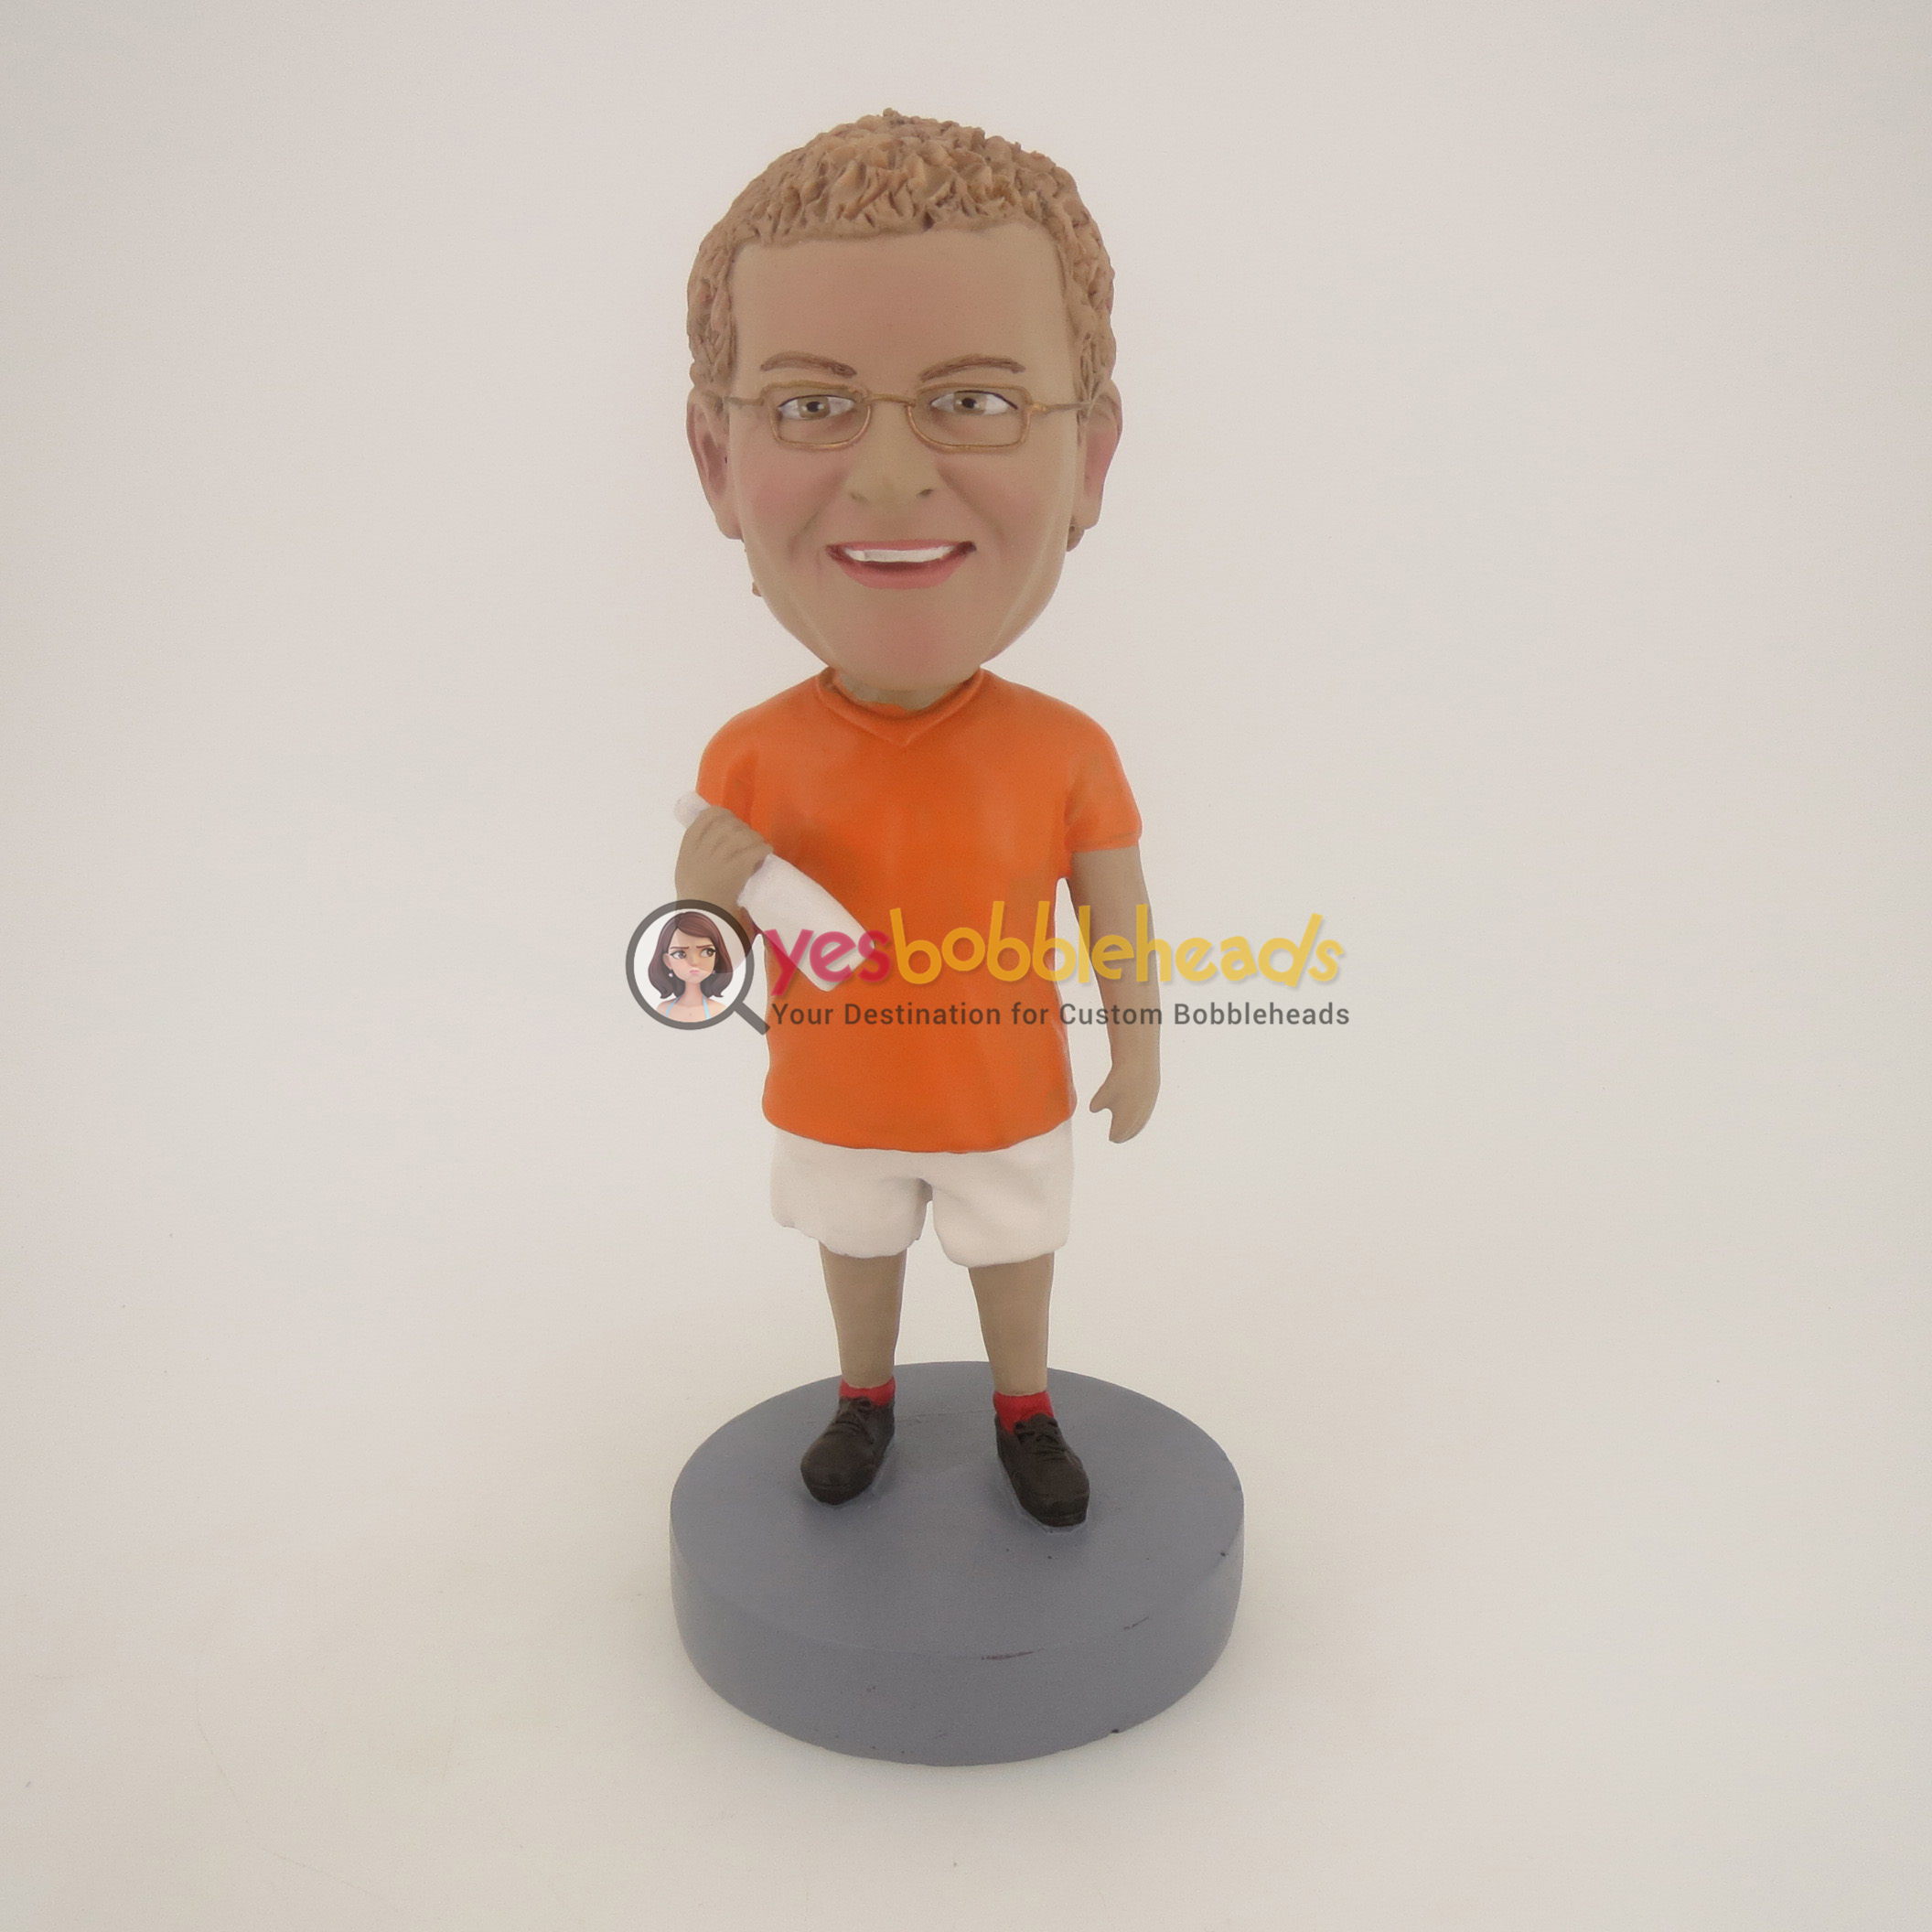 Picture of Custom Bobblehead Doll: Casual Man Happily Enjoy Drink